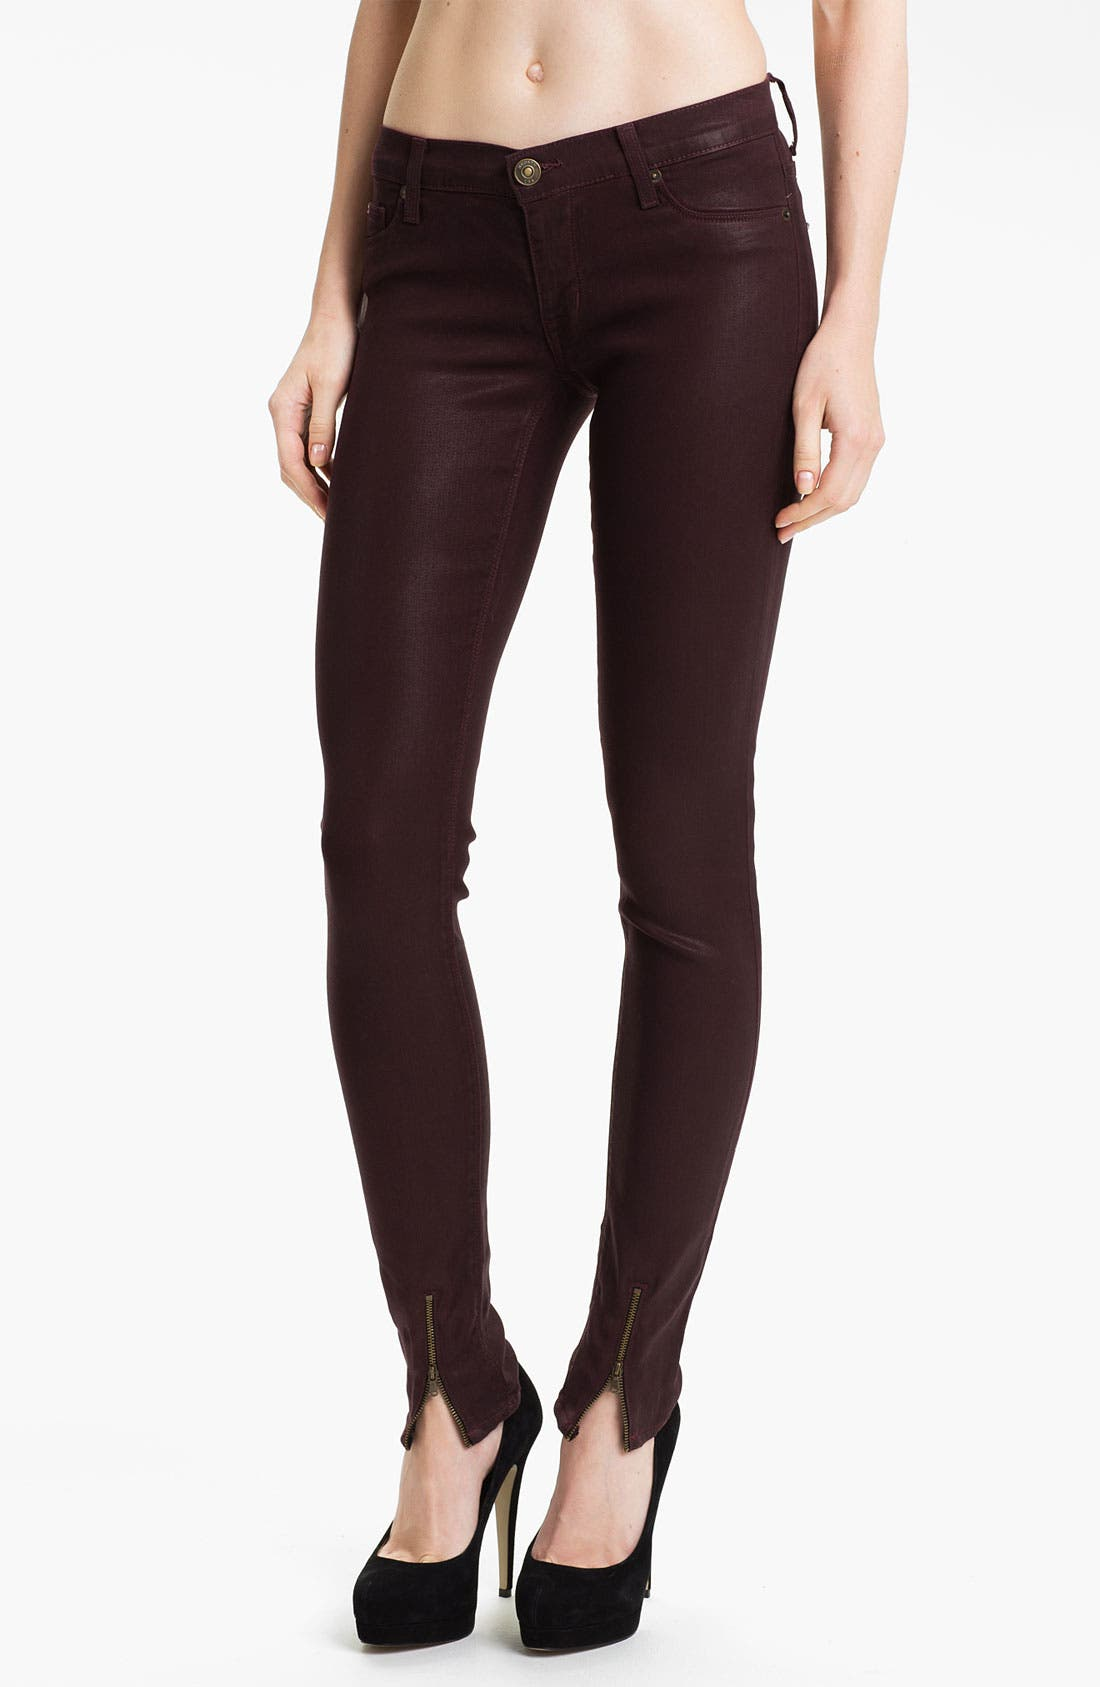 Alternate Image 1 Selected - Hudson Jeans Super Skinny Jeans (Bordeaux Wax)